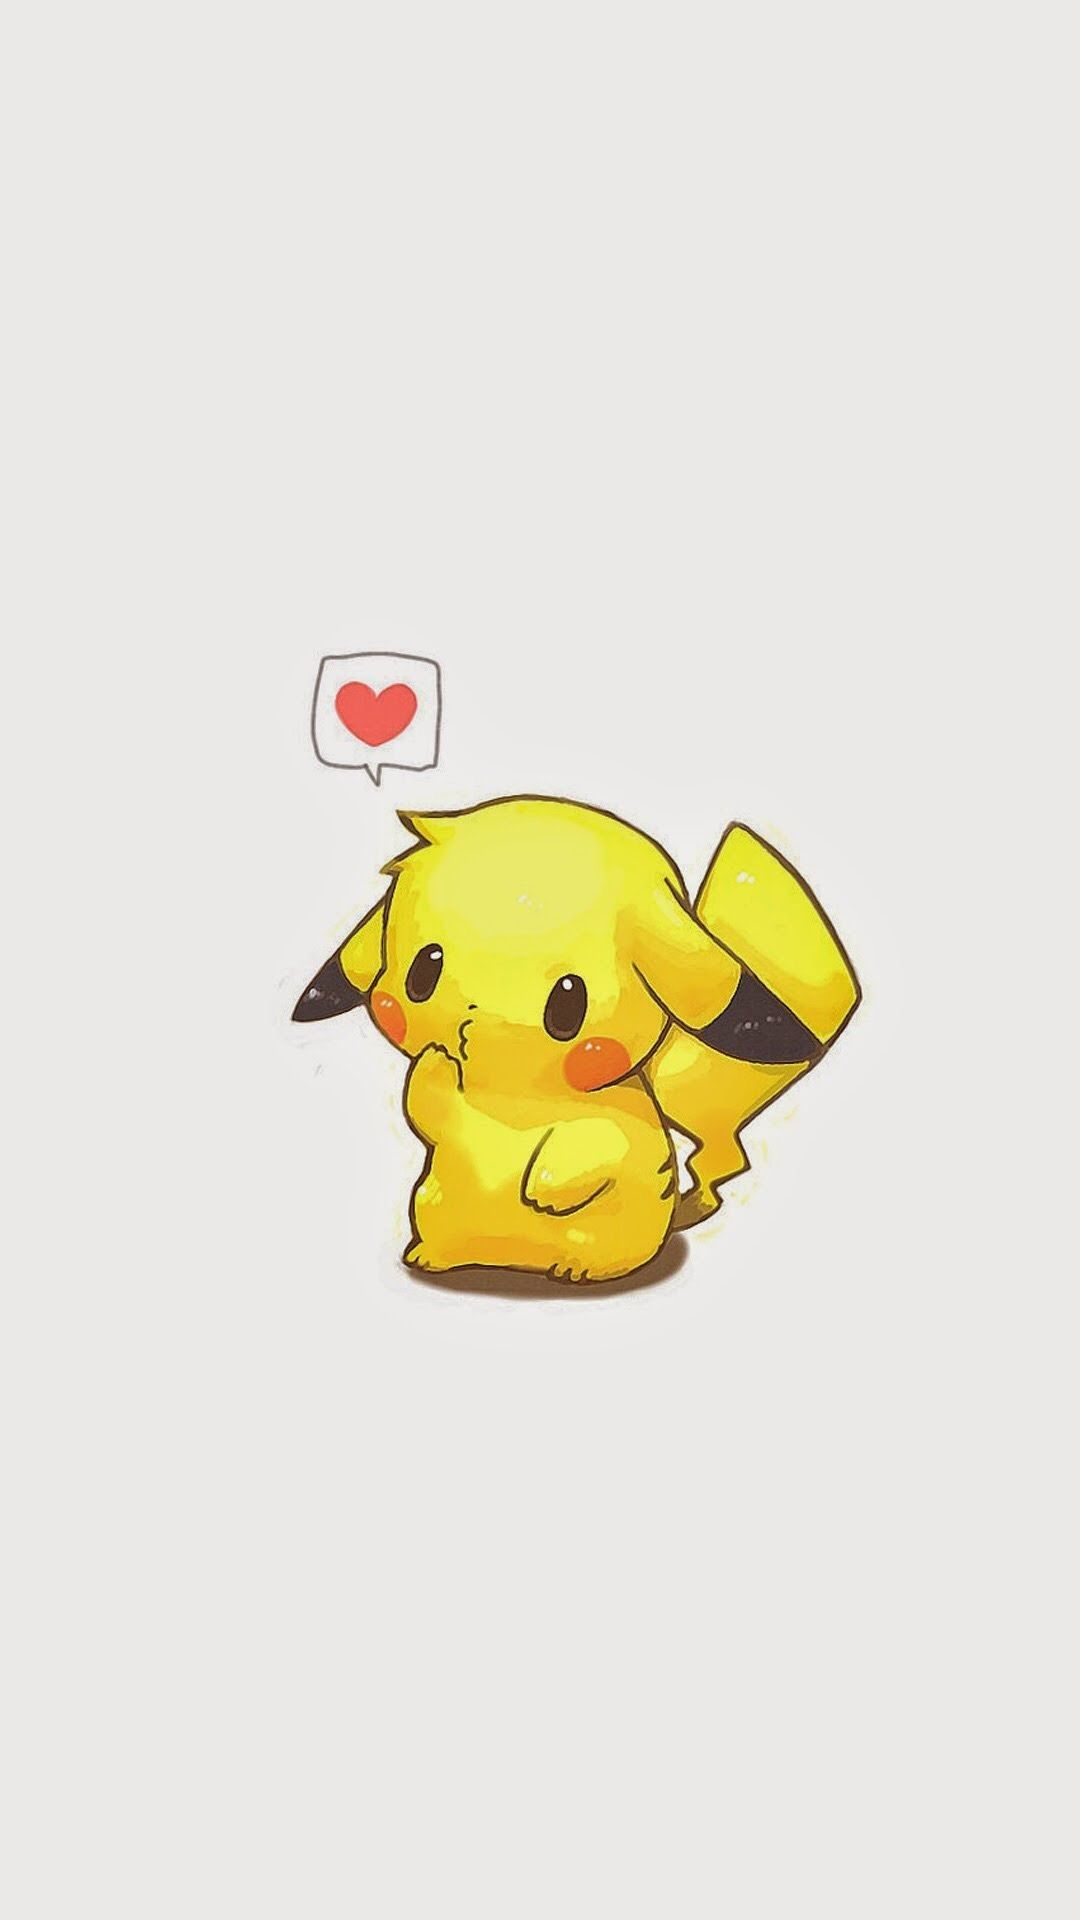 Pikachu Pictures Hupages Download Iphone Wallpapers Pikachu Wallpaper Pikachu Art Pikachu Drawing